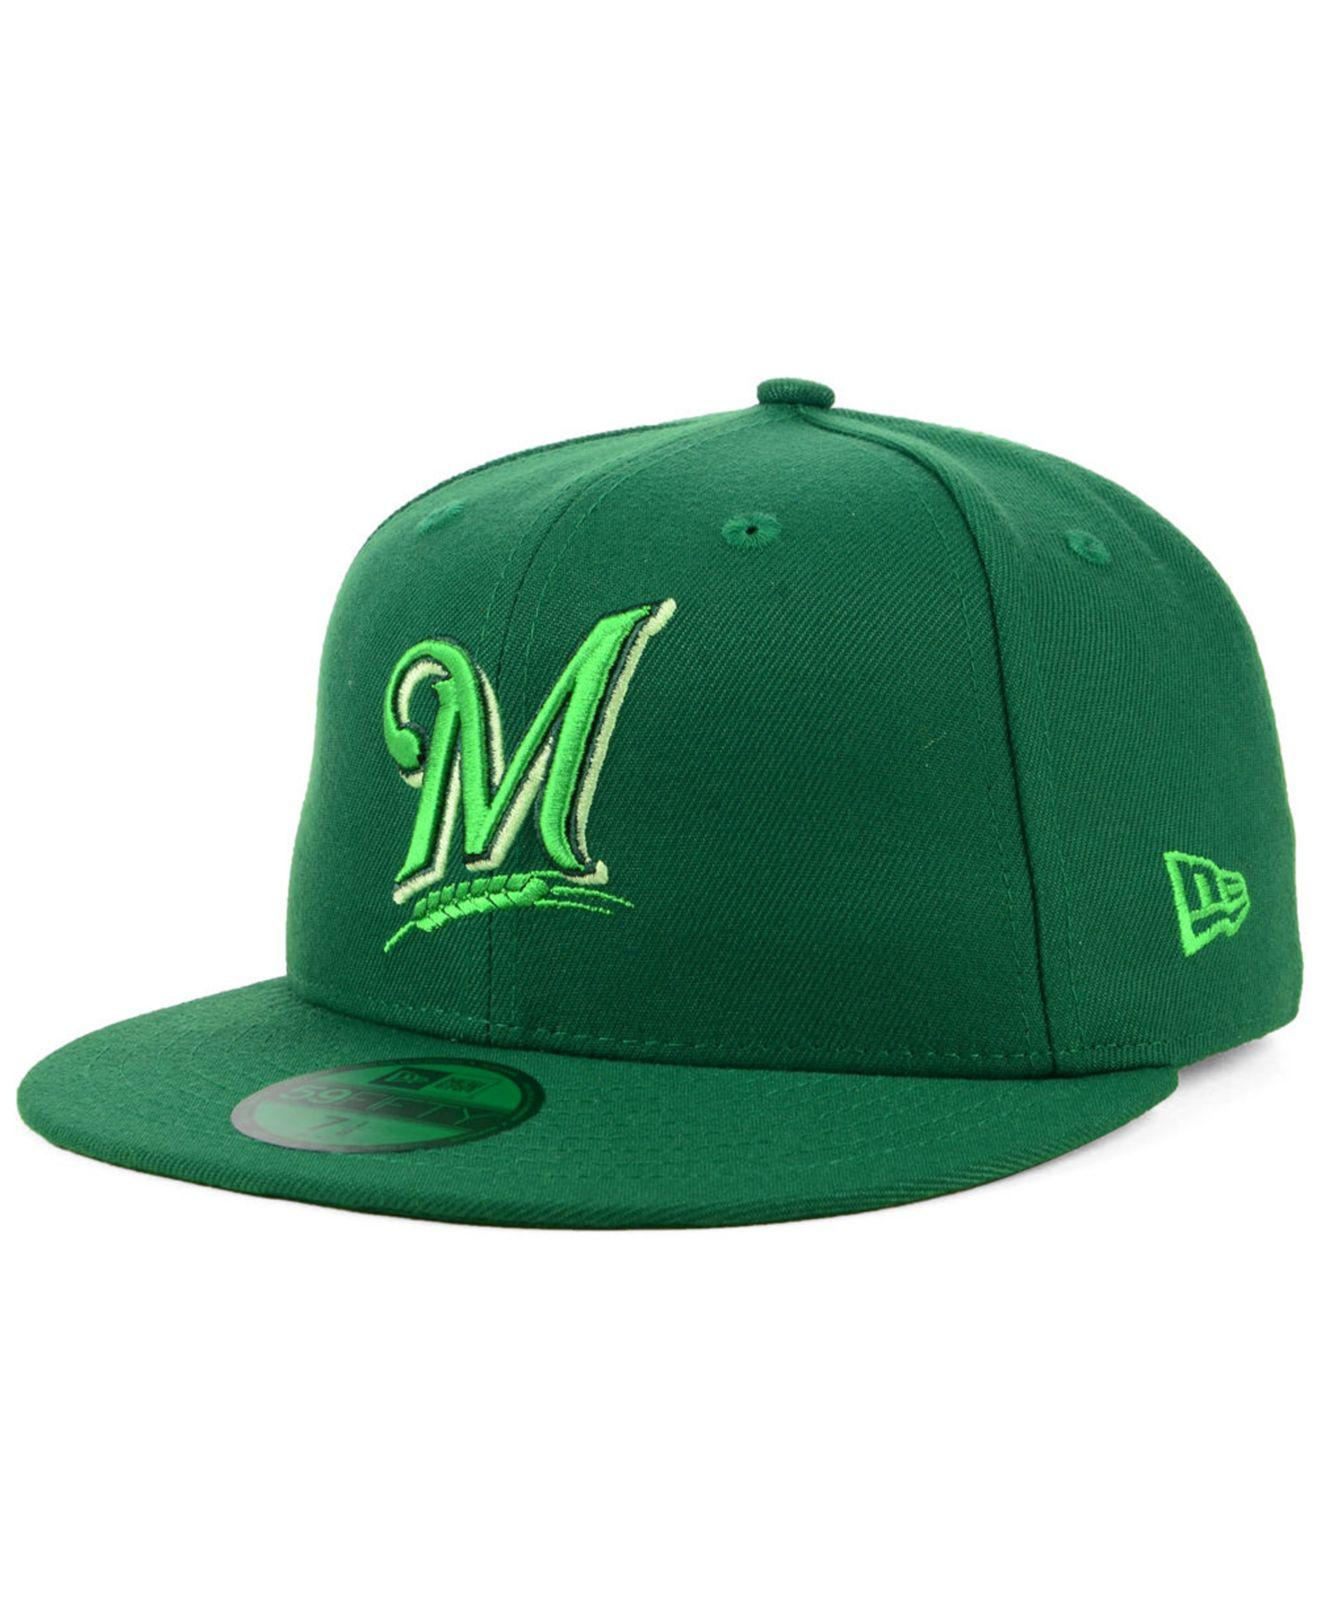 detailed look 28879 e4aa3 ... uk ktz. mens green milwaukee brewers prism color pack 59fifty cap 95363  18252